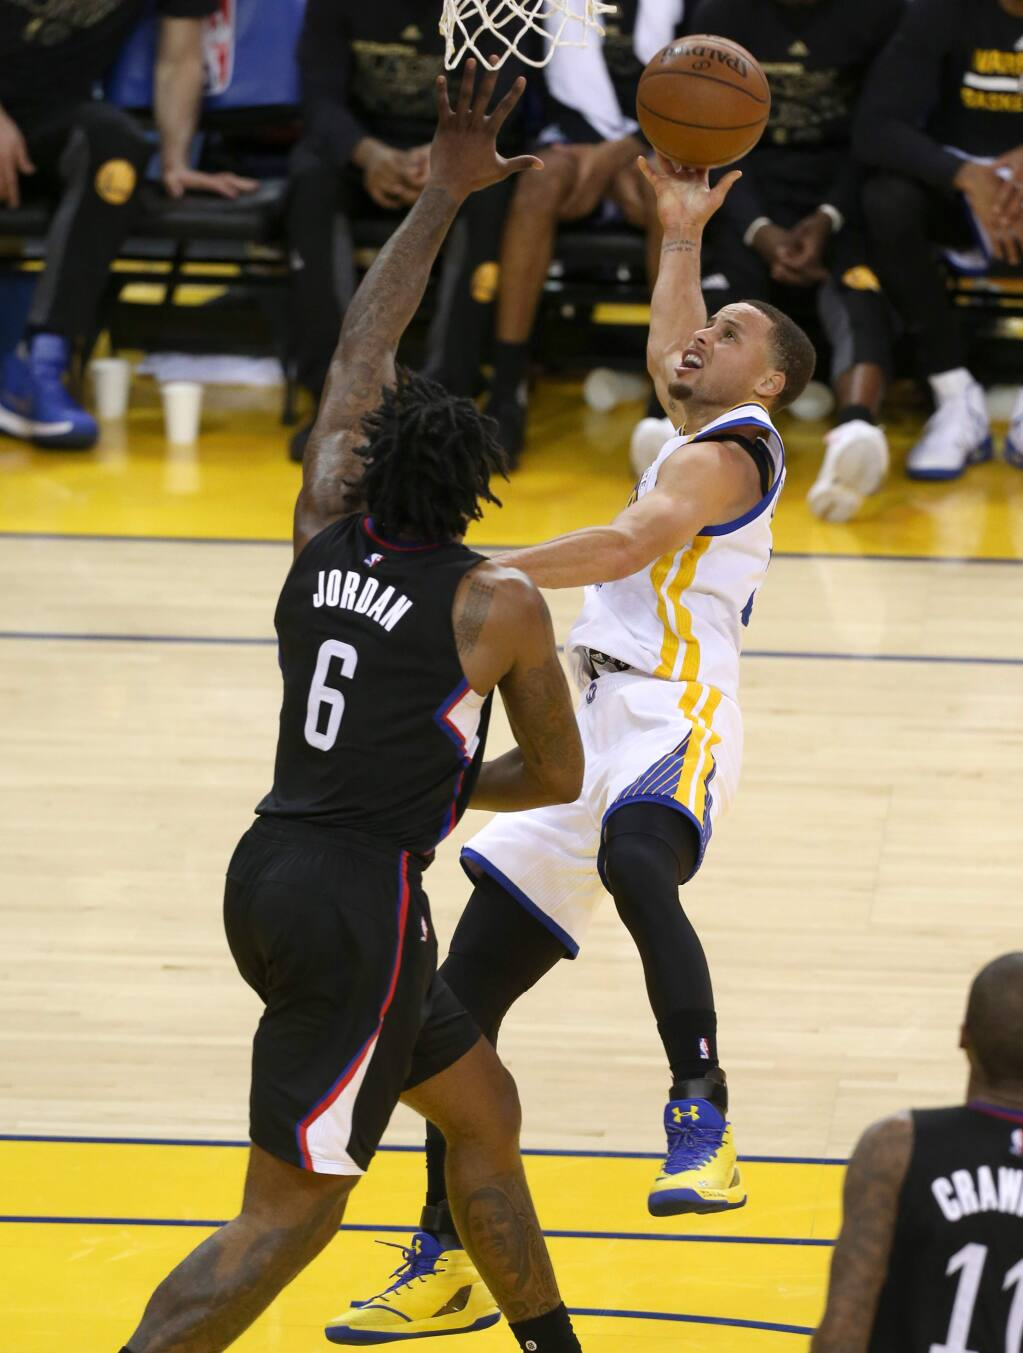 Golden State Warriors' Stephen Curry is fouled by Los Angeles Clippers' DeAndre Jordan as he goes to the basket in Oakland on Thursday, February 23. (Christopher Chung/ The Press Democrat)